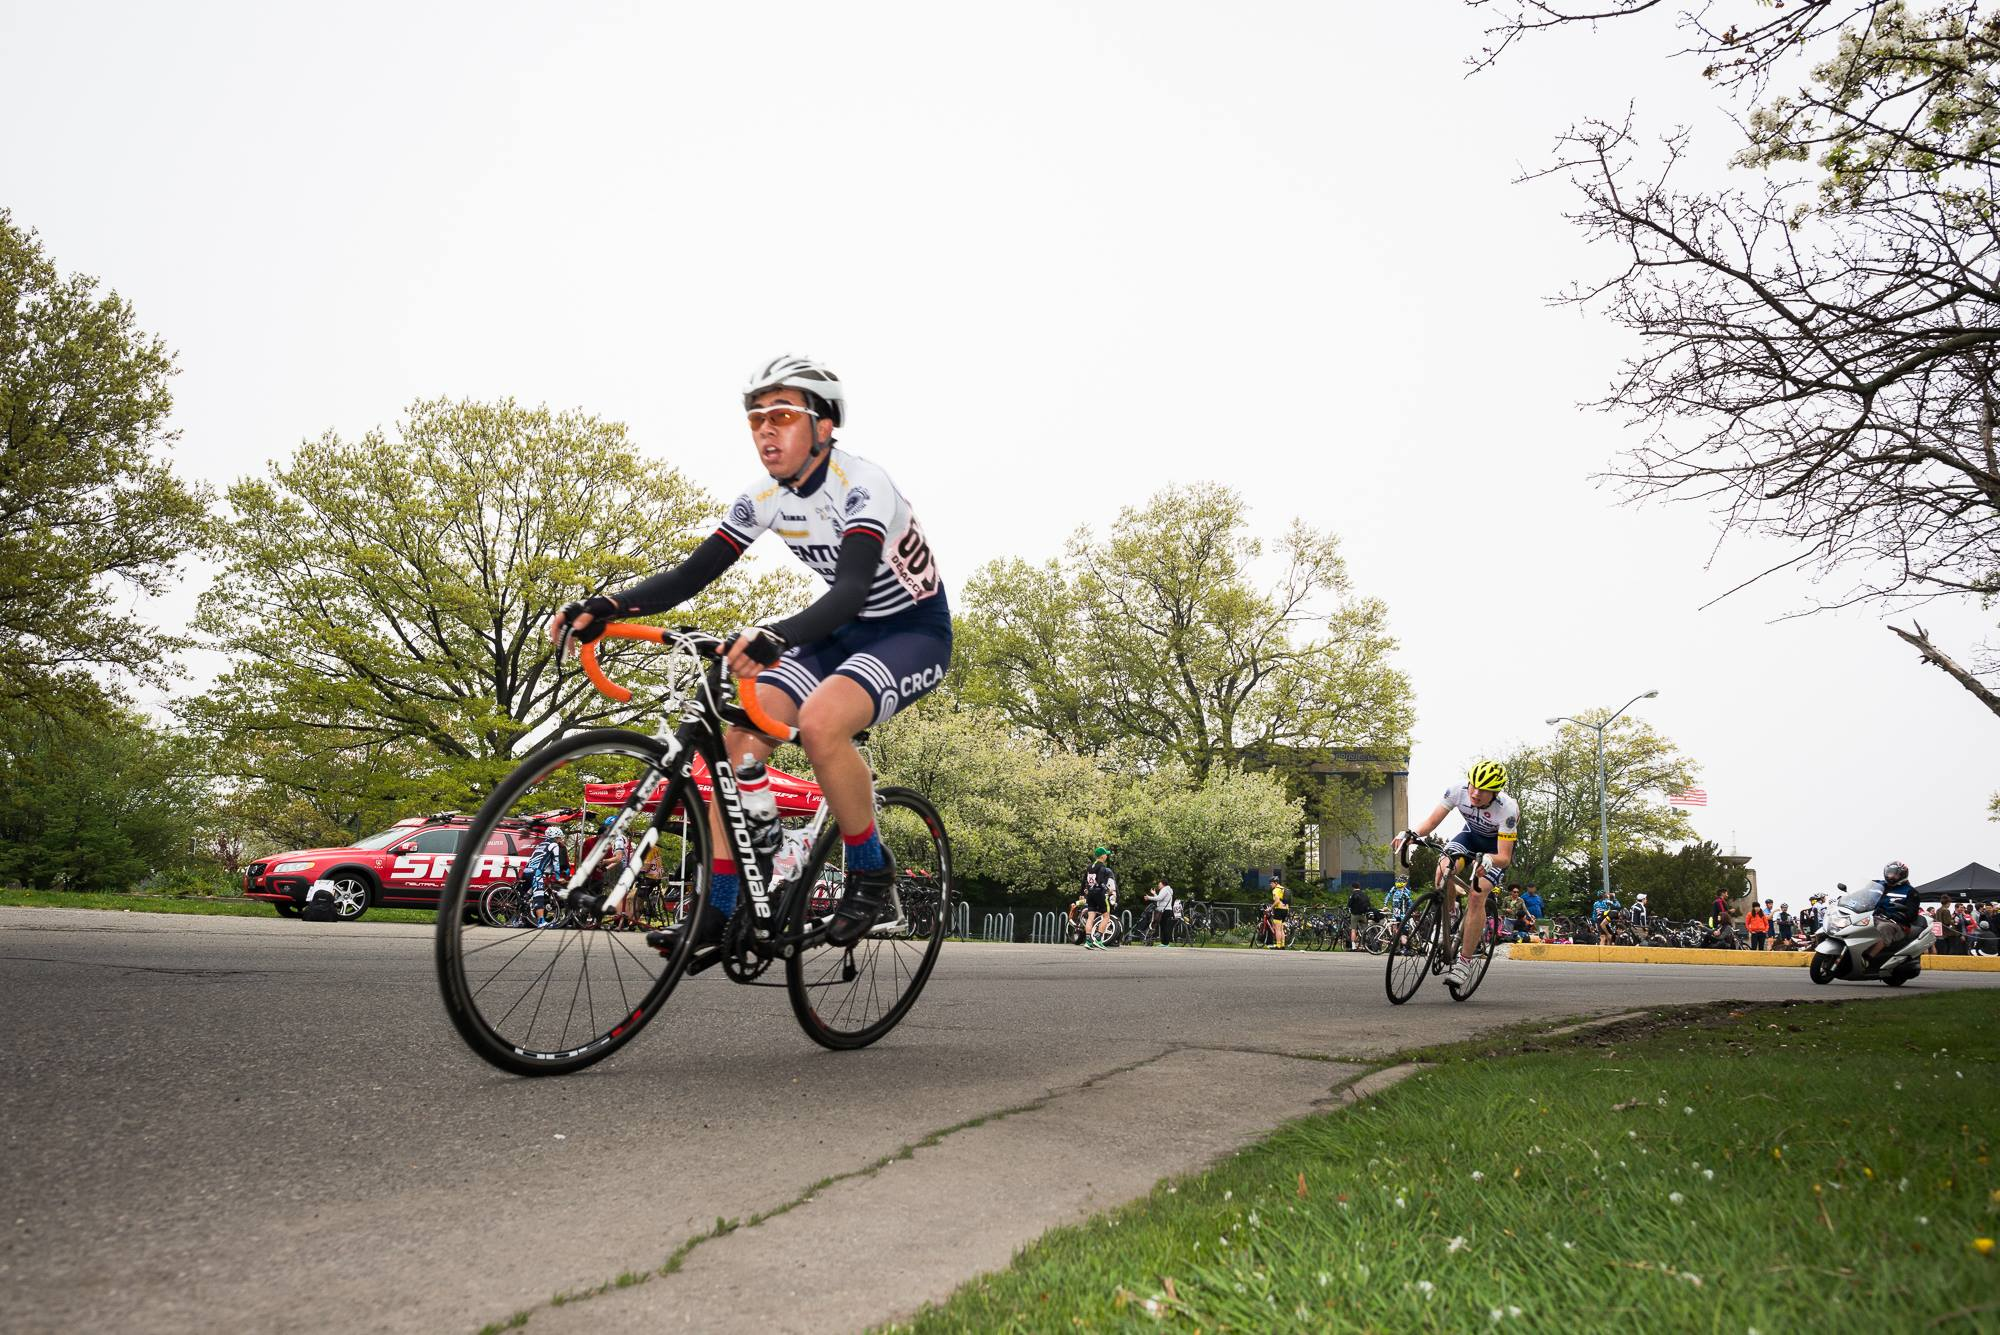 GALEN XING     Hometown: Bronx, NY   Favorite   Ride: GMSR Queen Stage   Racing Since: 2013   Competes in: Men's B